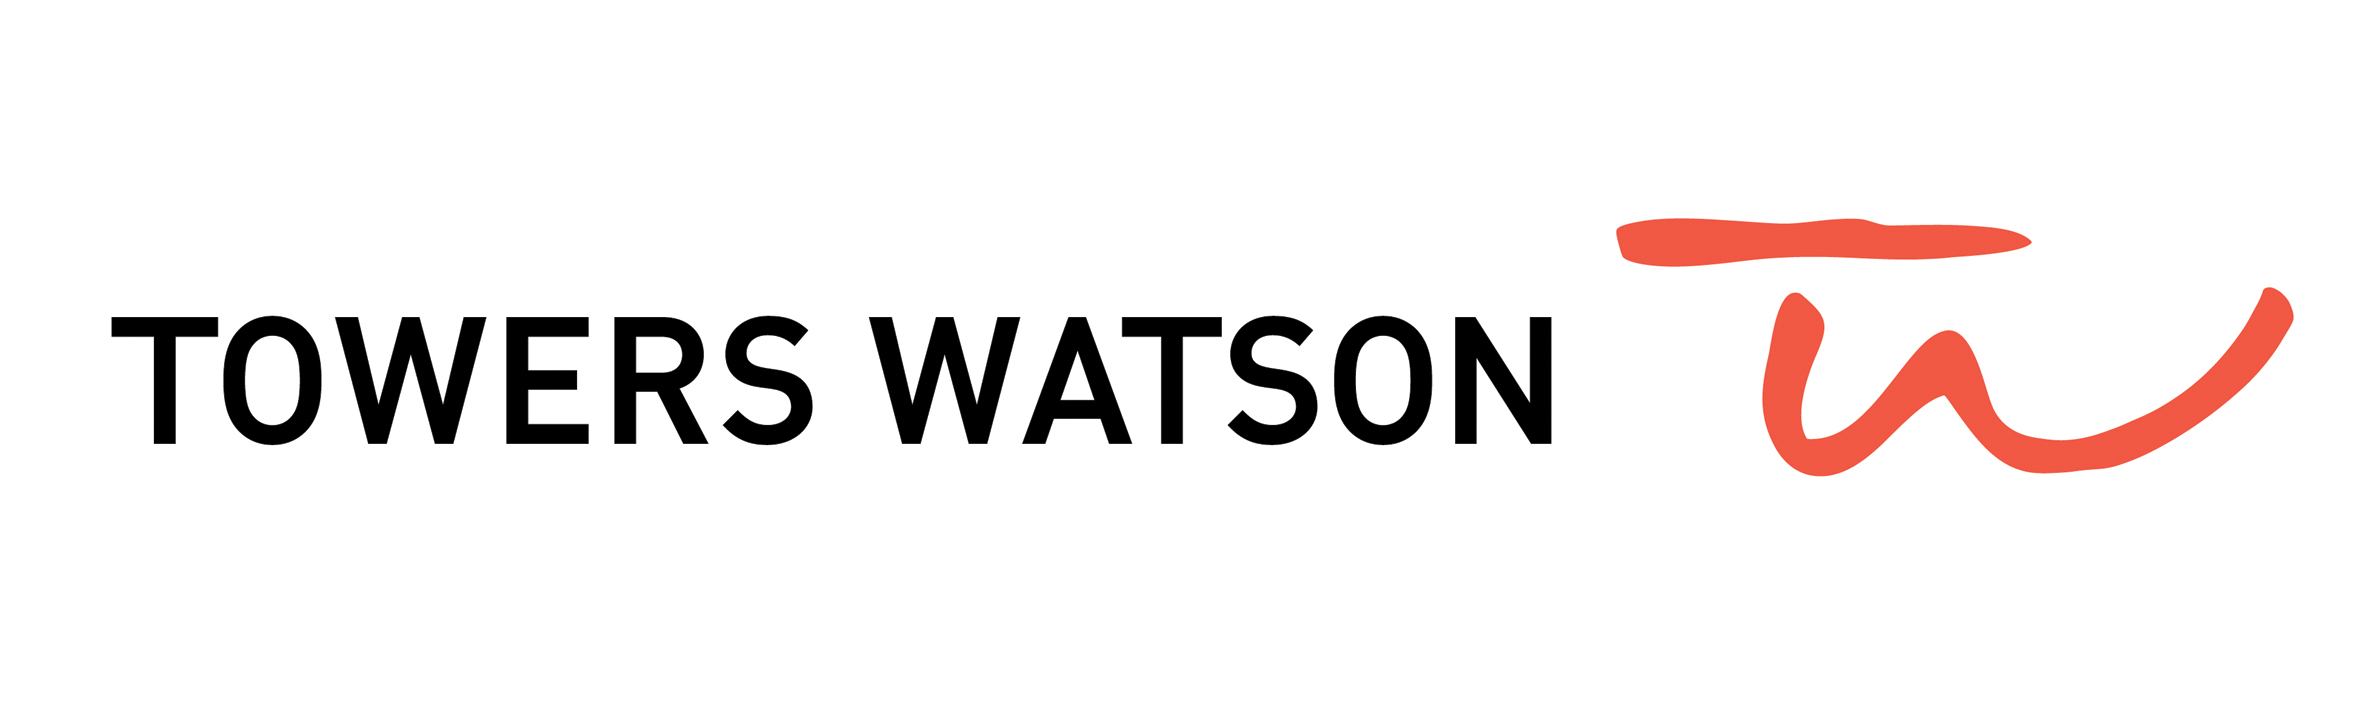 Towers Watson & Co. Logo